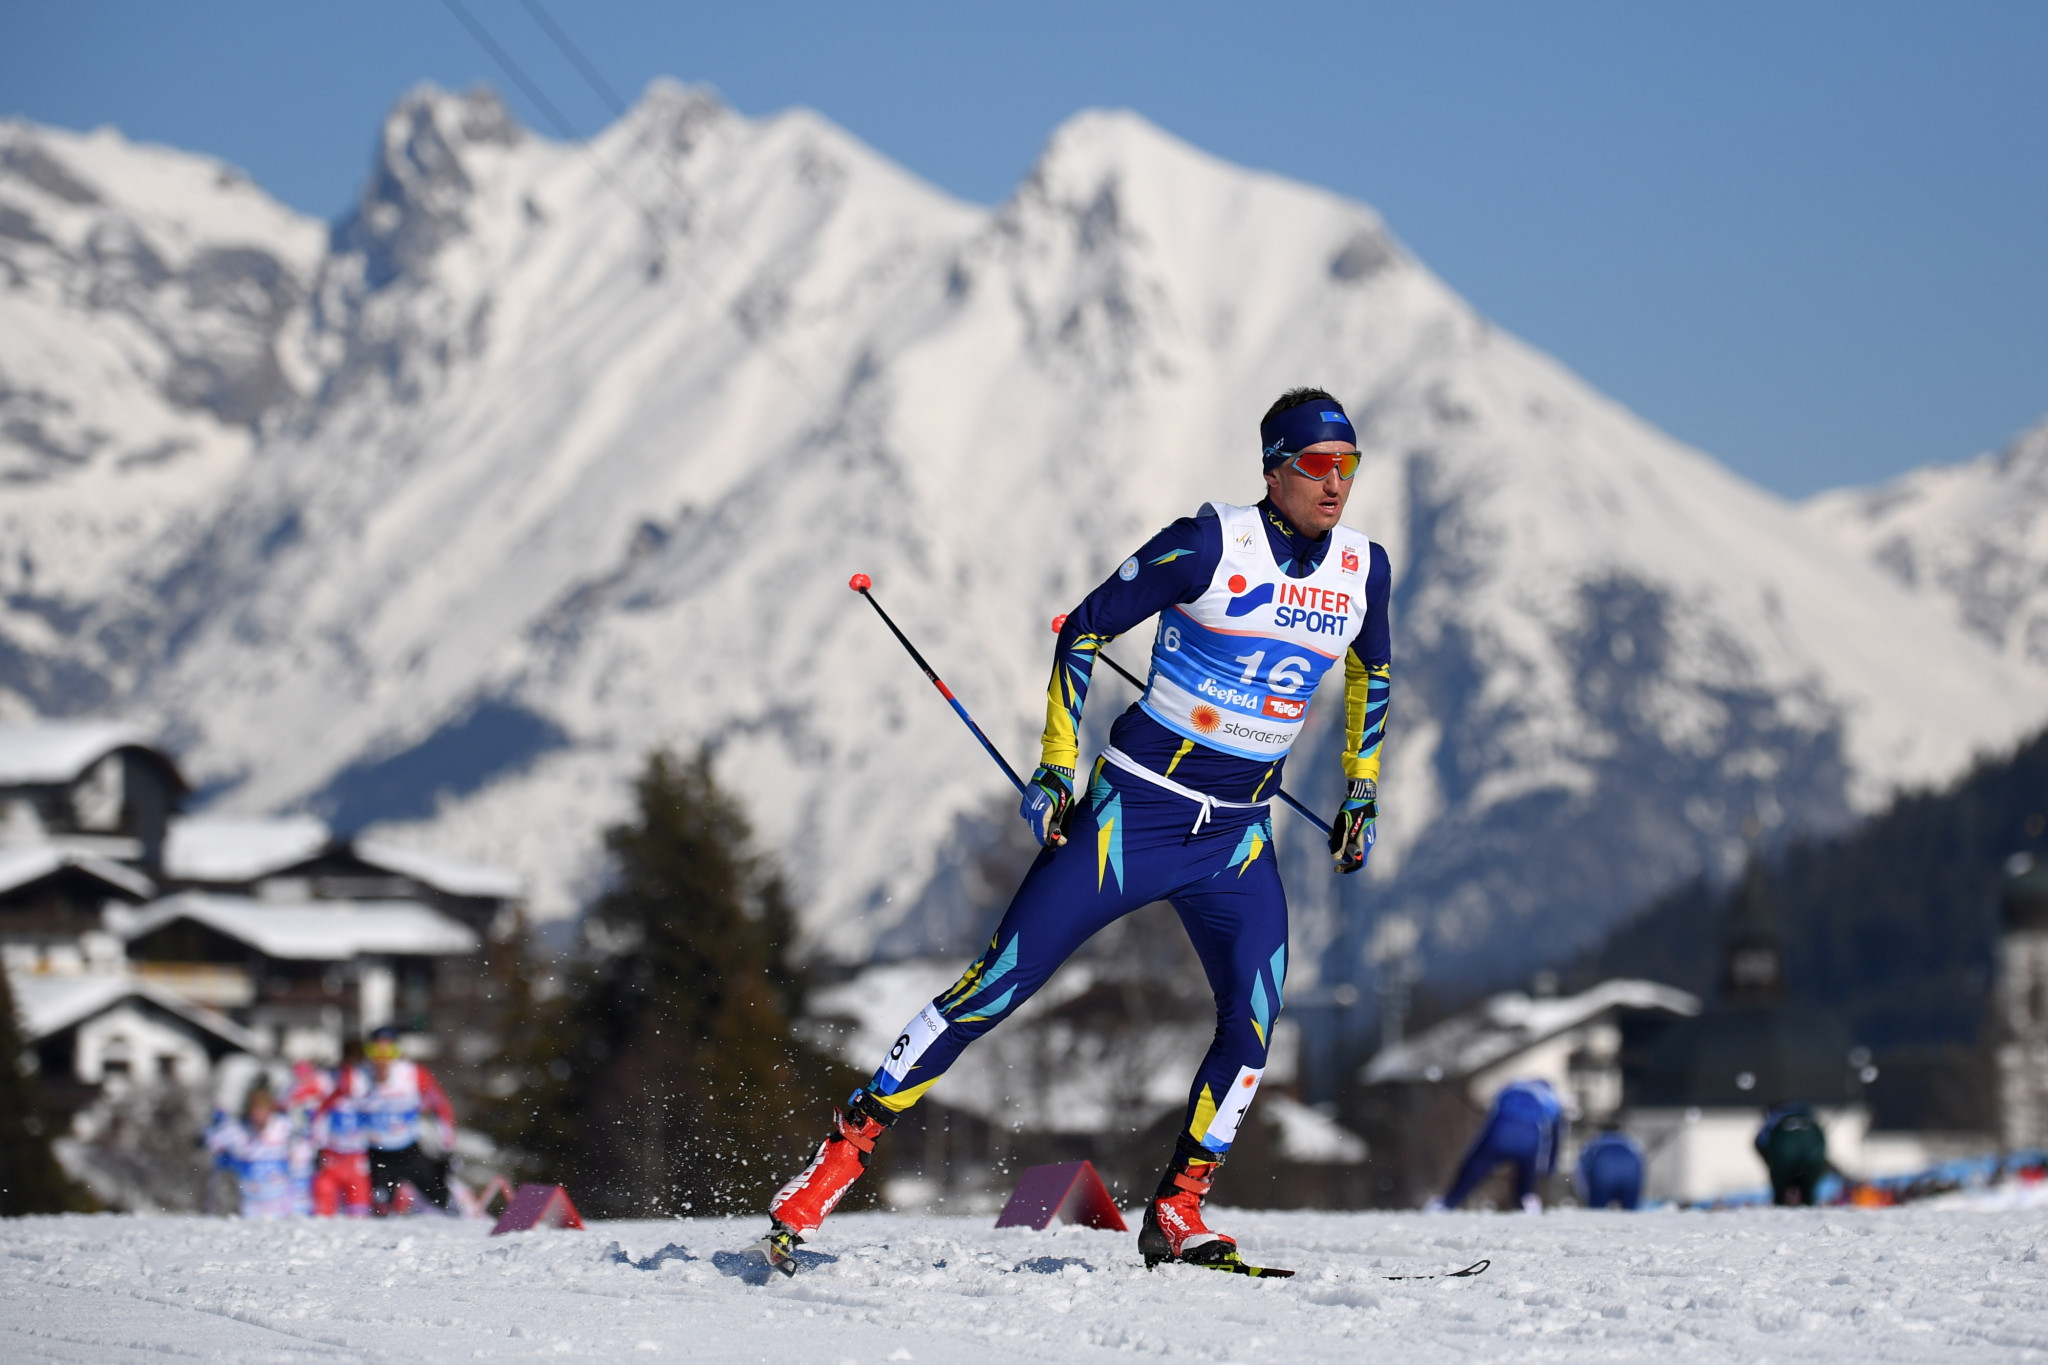 Son of double Olympic champion among athletes arrested at FIS Nordic World Ski Championships